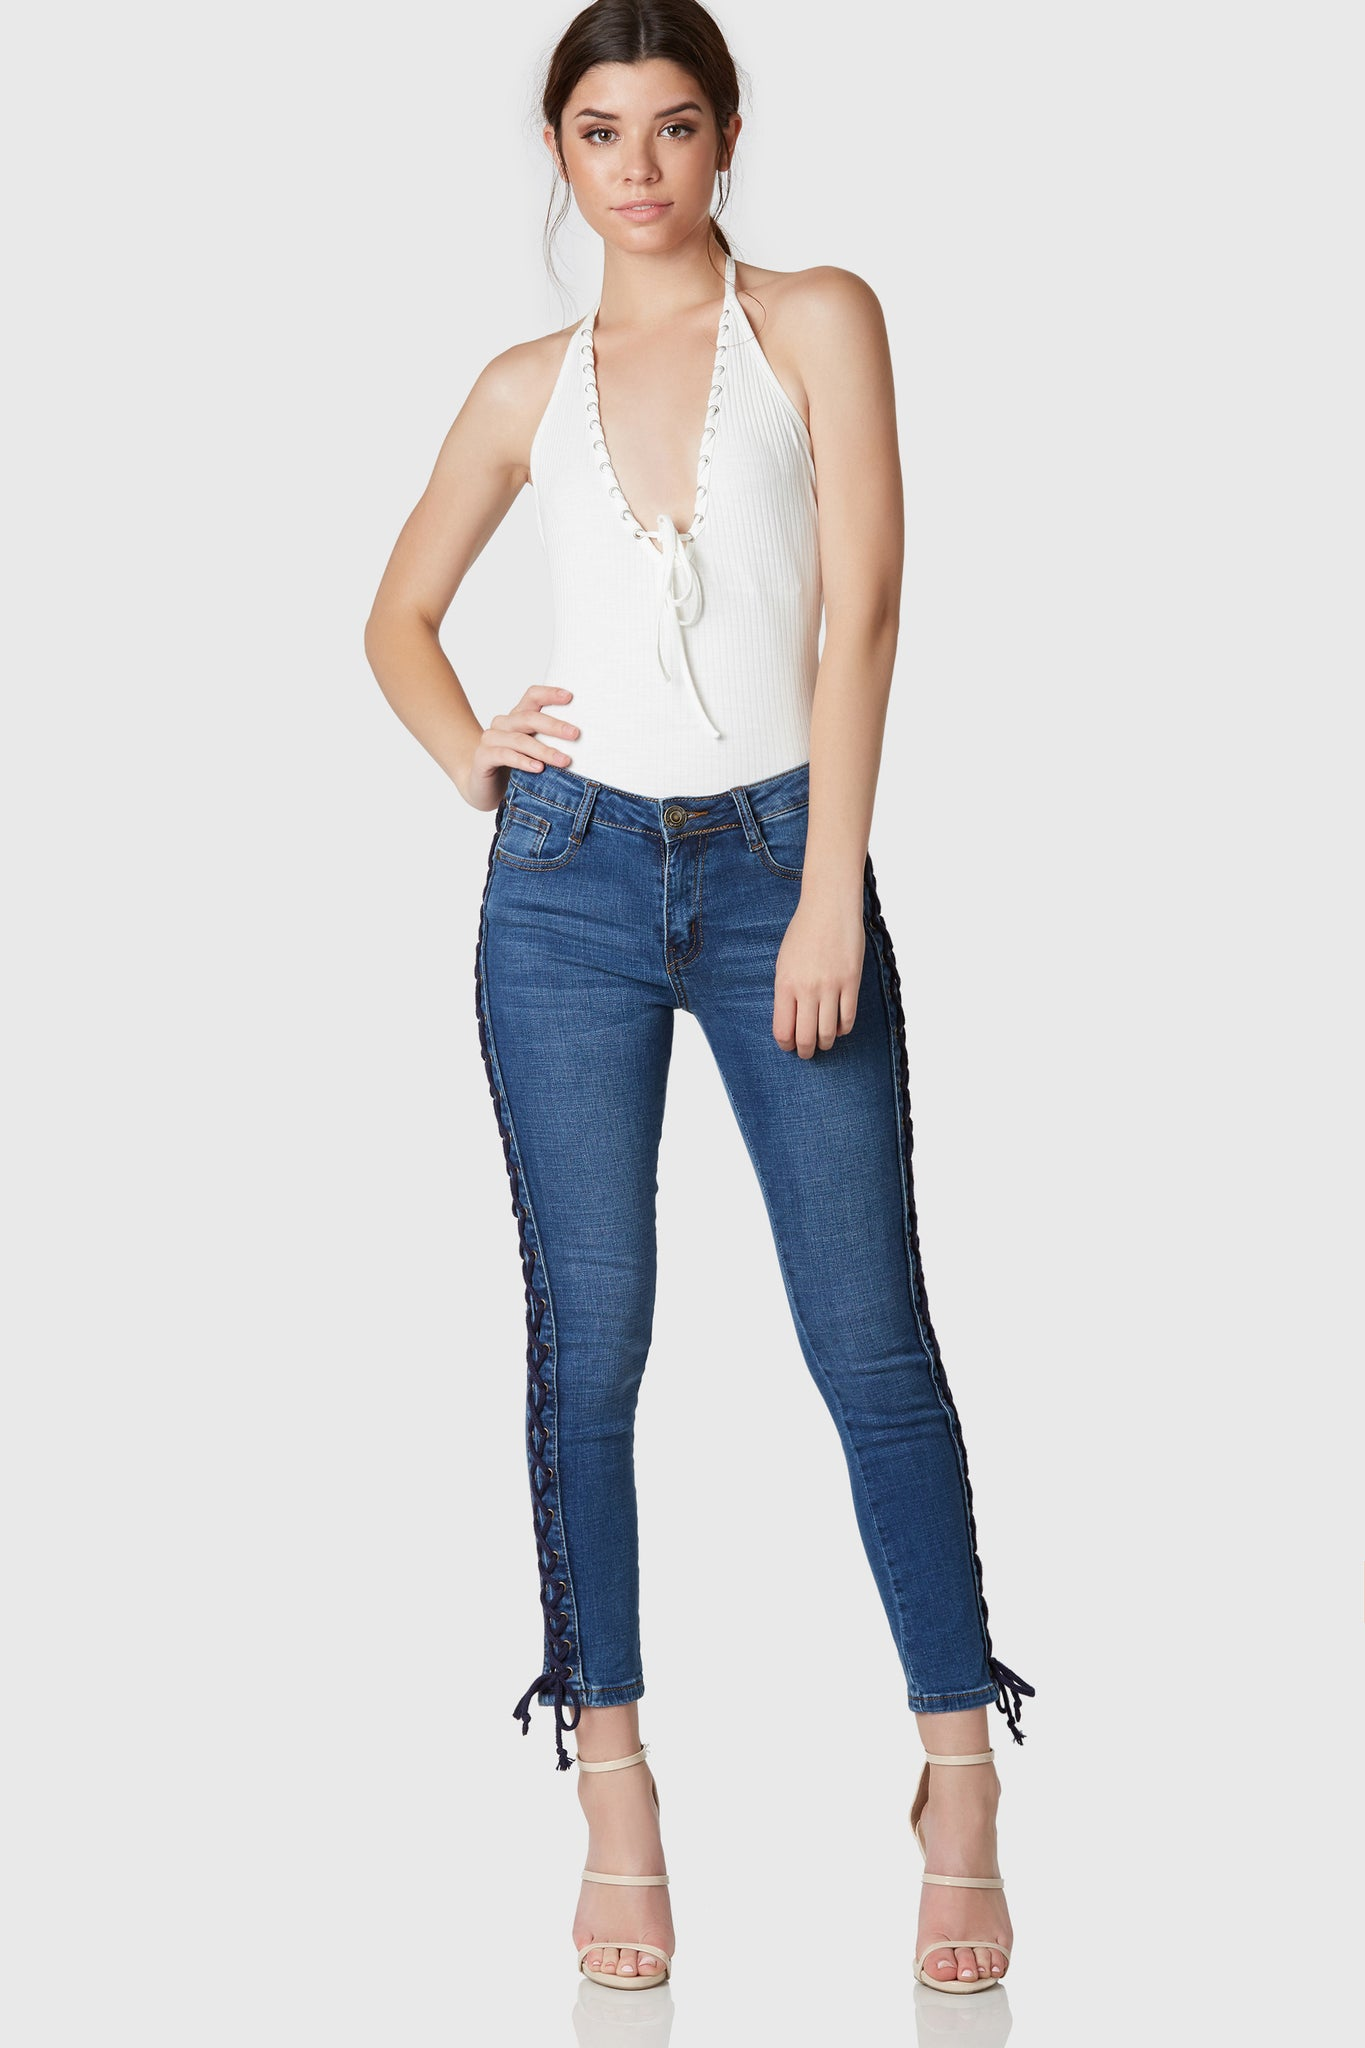 Classic pair of blue jeans with comfortable stretchy fit. 5 pocket design with button and zip closure. Trendy lace up detailing on each side.